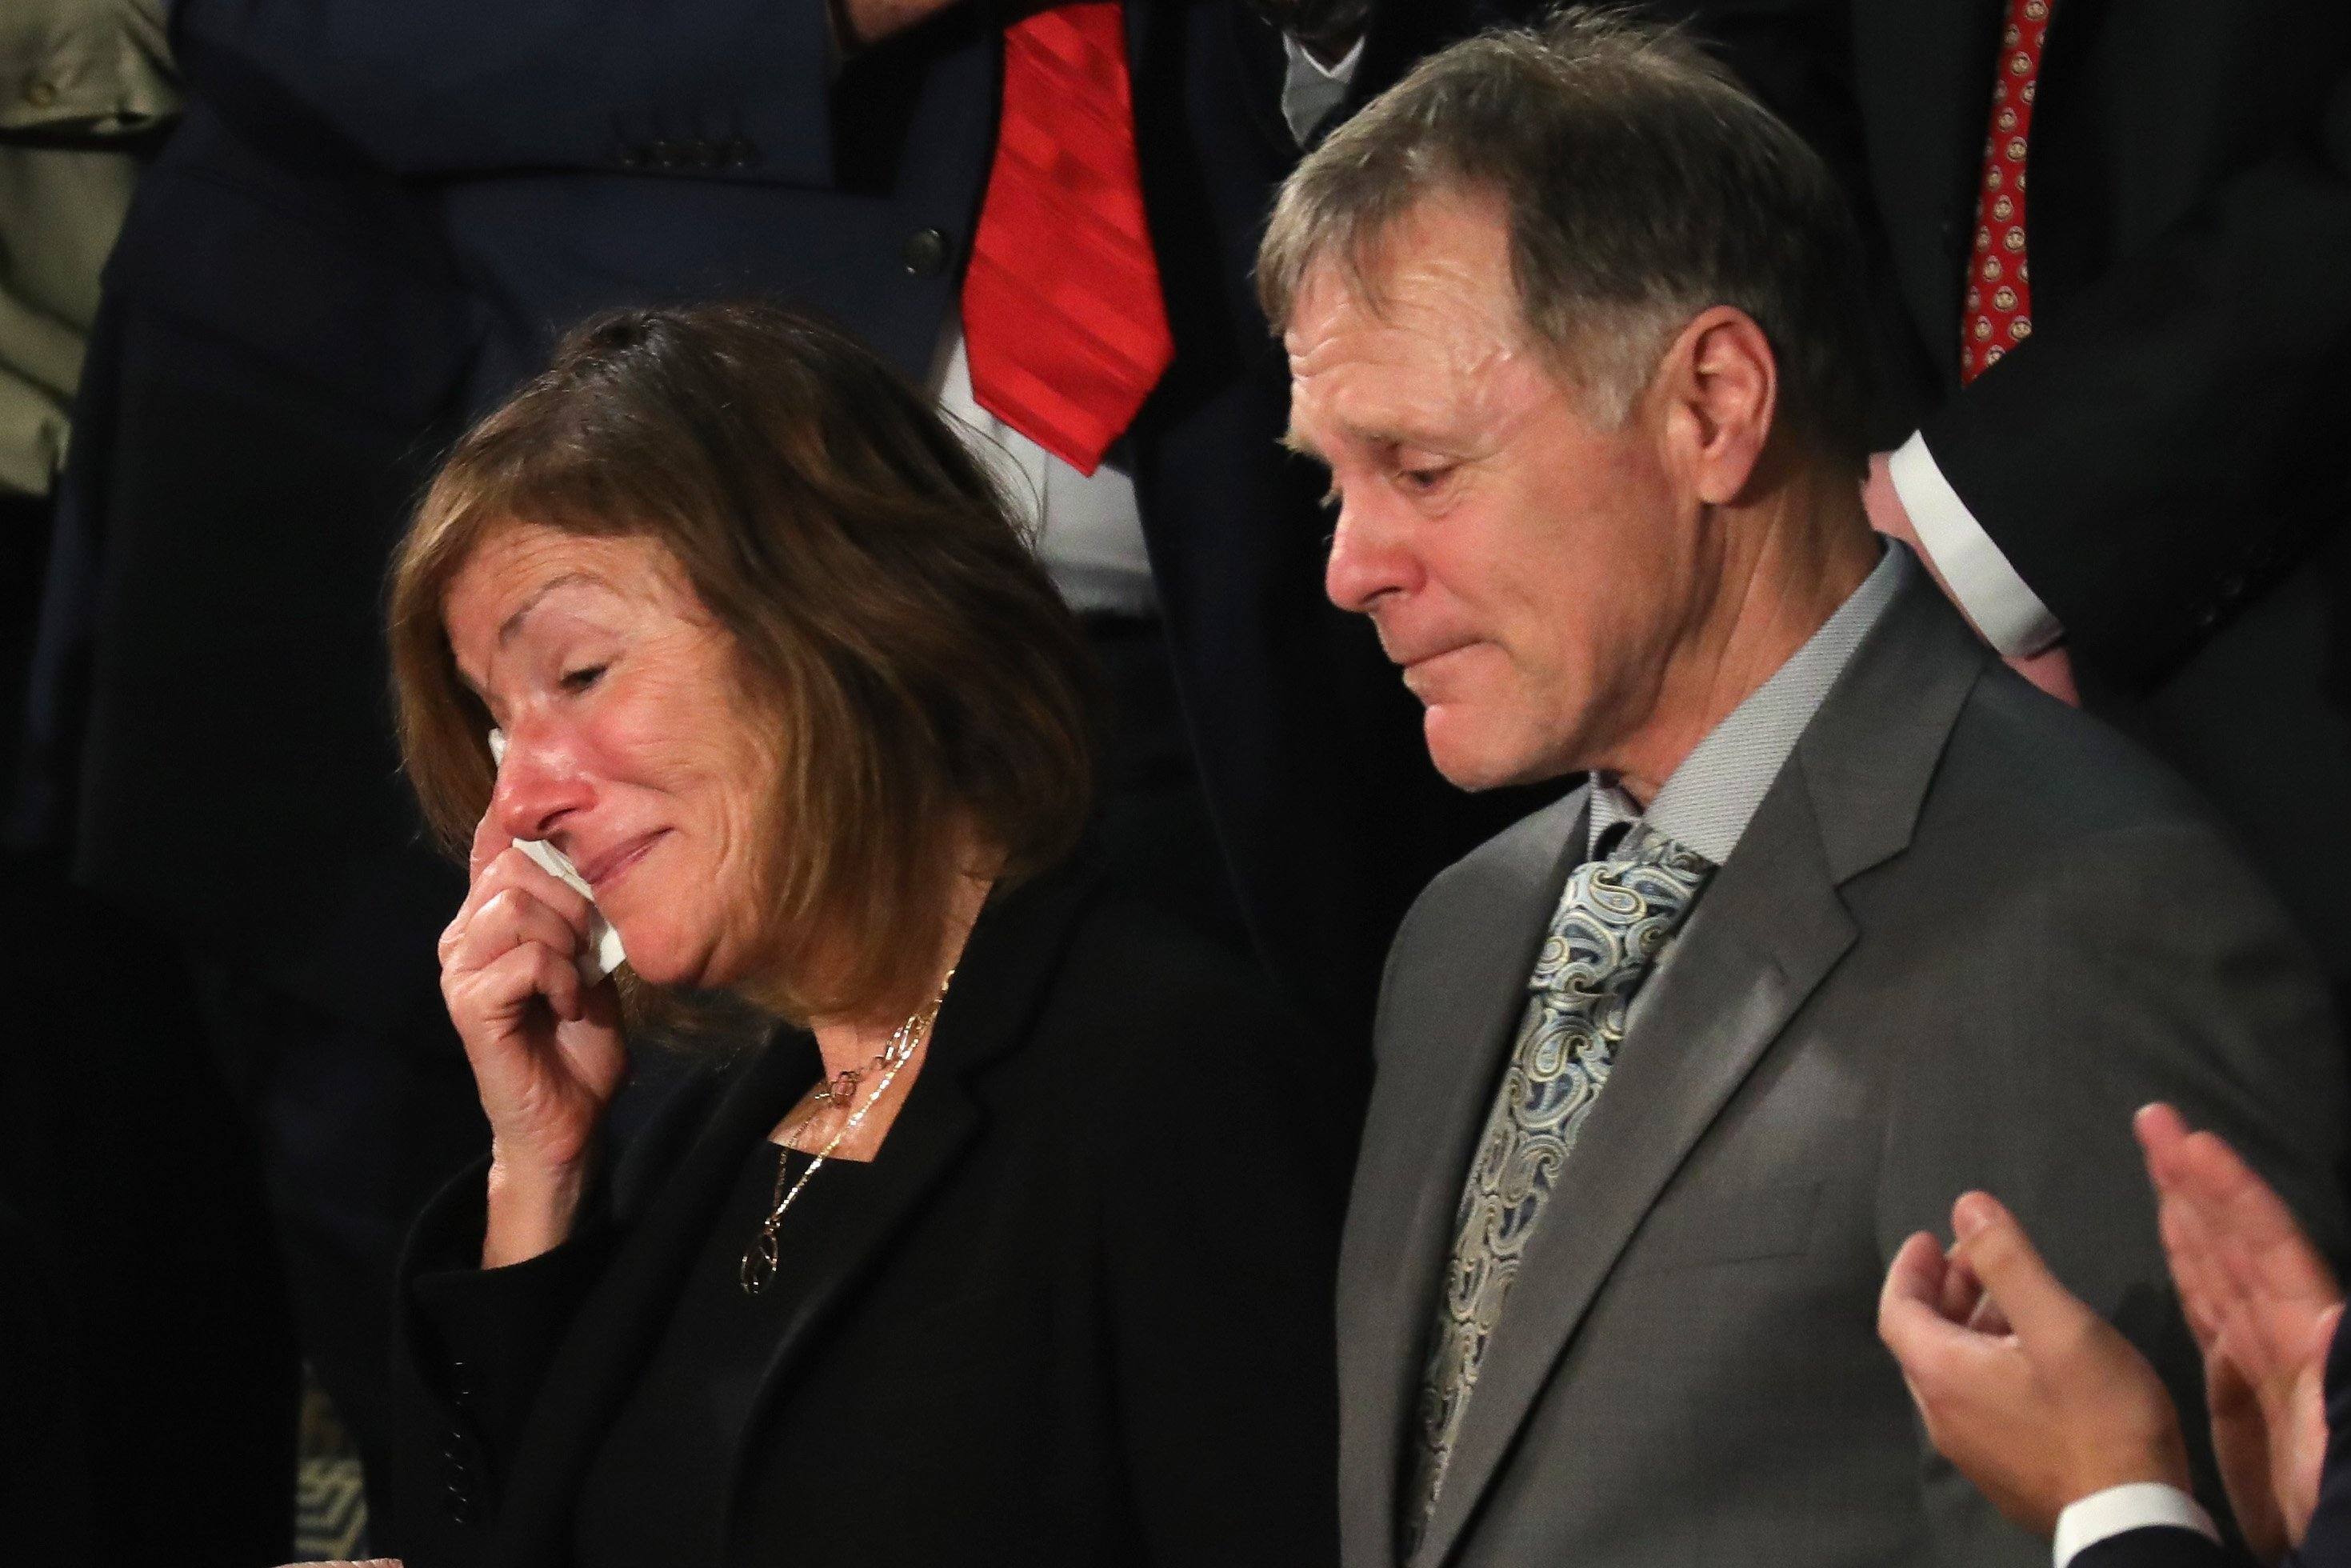 Parents of Otto Warmbier, Fred and Cindy Warmbier | Source: Getty Images/ Global Images Ukraine